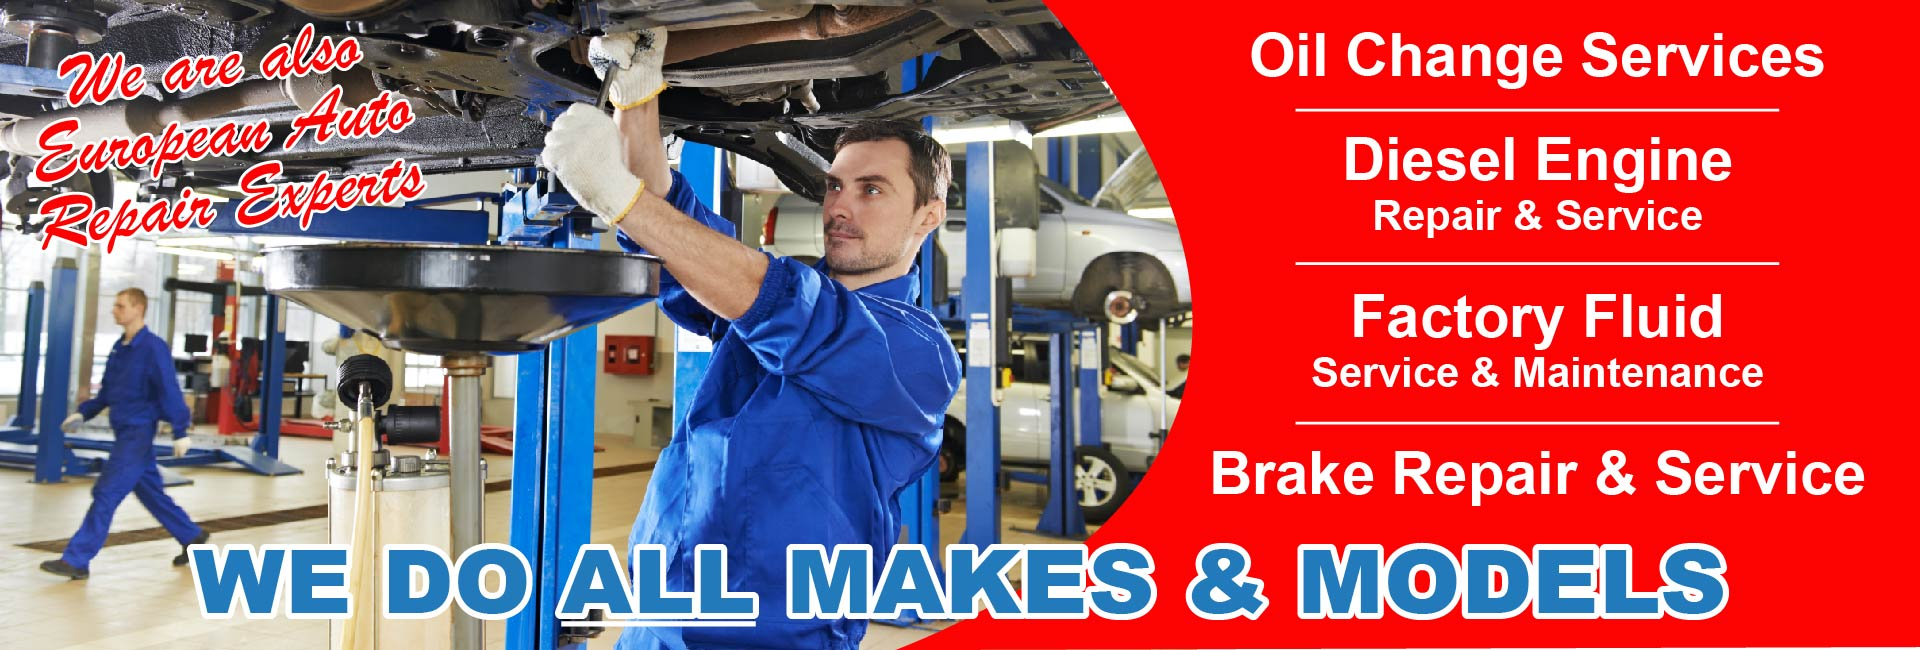 United Auto Care Repair Flowery Branch Ga Transmissions Mechanic Engine Brakes Service At We Strive To Provide 100 Percent Customer Satisfaction And Be Your Choice Center